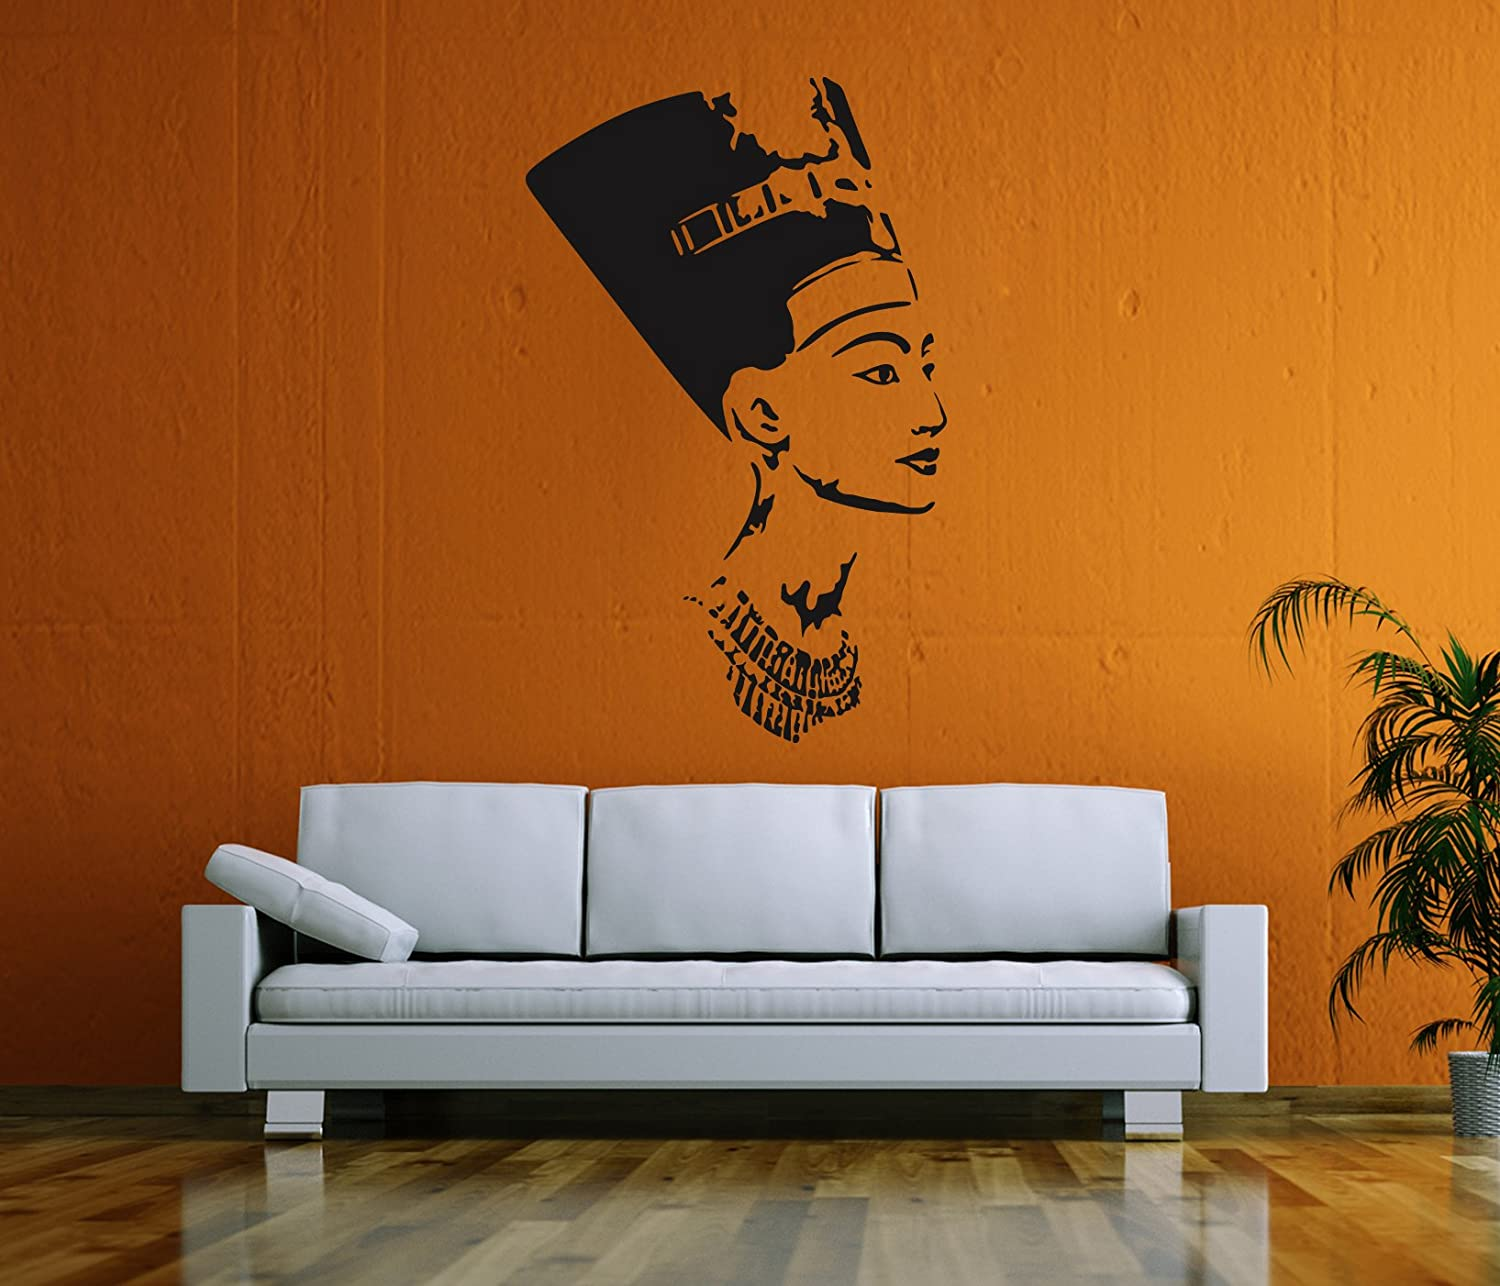 Amazon.com: Ik58 Wall Decal Sticker Room Decor Wall Art Mural Profile Of  The Egyptian Queen Nefertiti Living Room Bedroom Interior: Home U0026 Kitchen Part 56